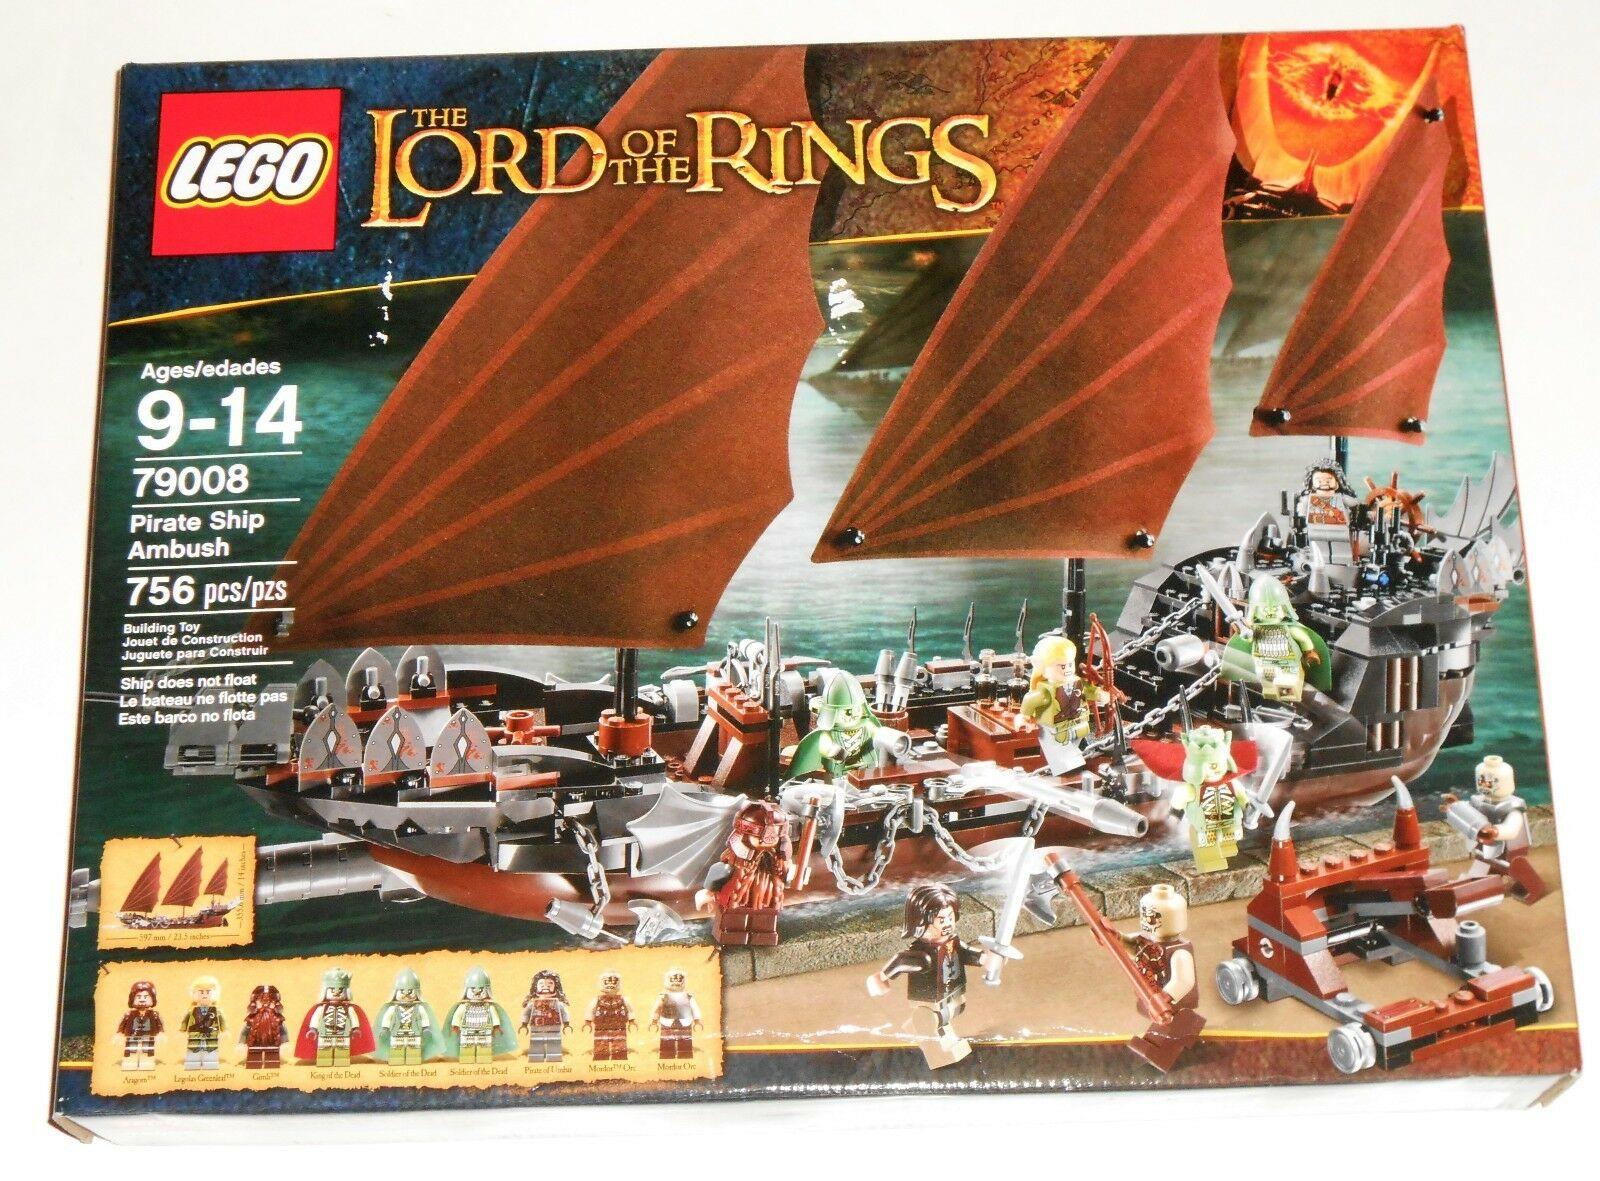 LEGO The Lord of the Rings 79008 Pirate Ship Ambush